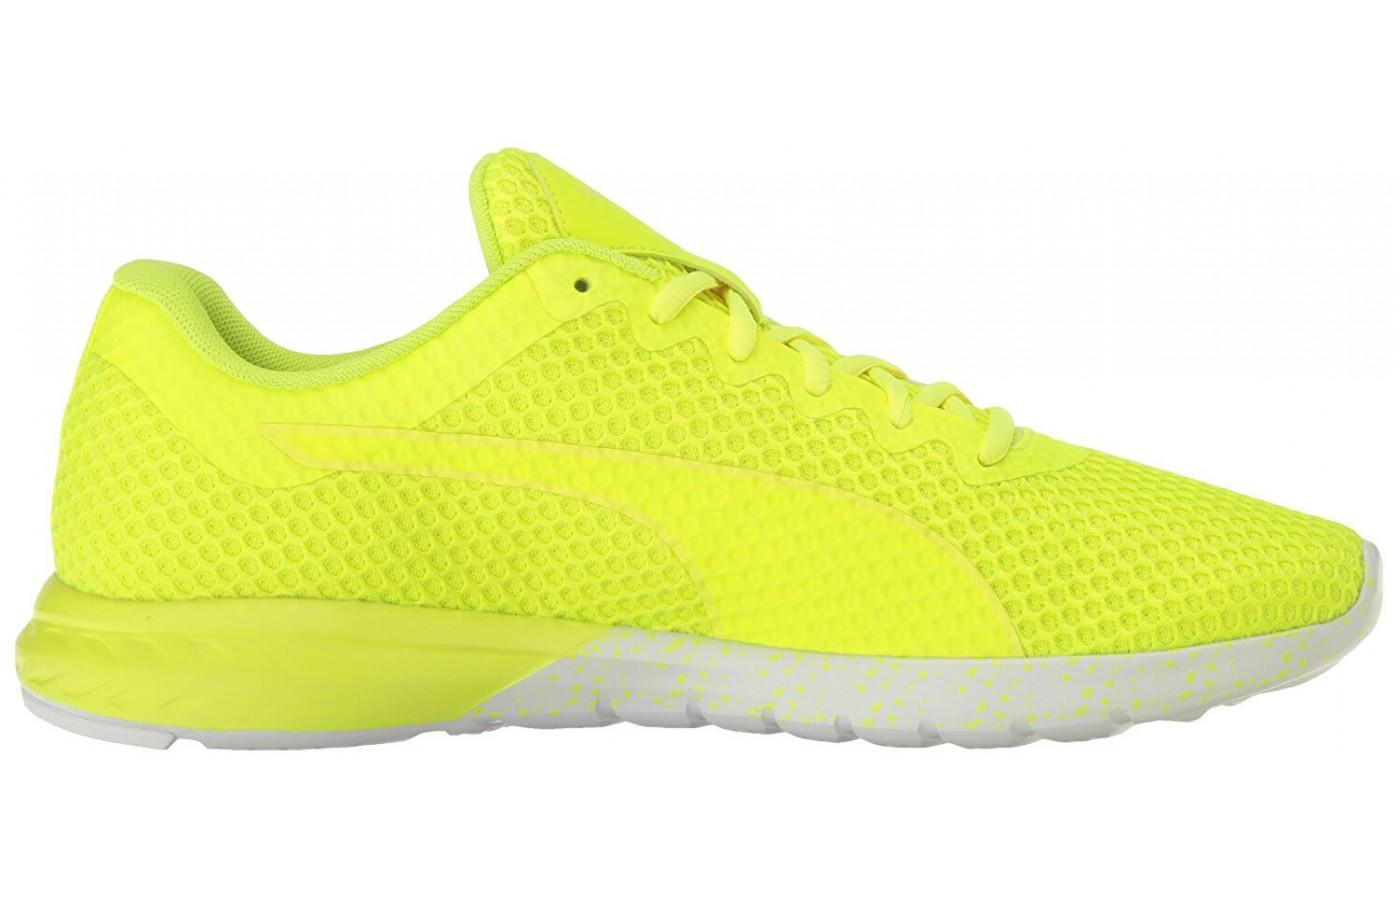 The Puma Vigor Mono has a seamless feeling mesh upper with bonded overlays